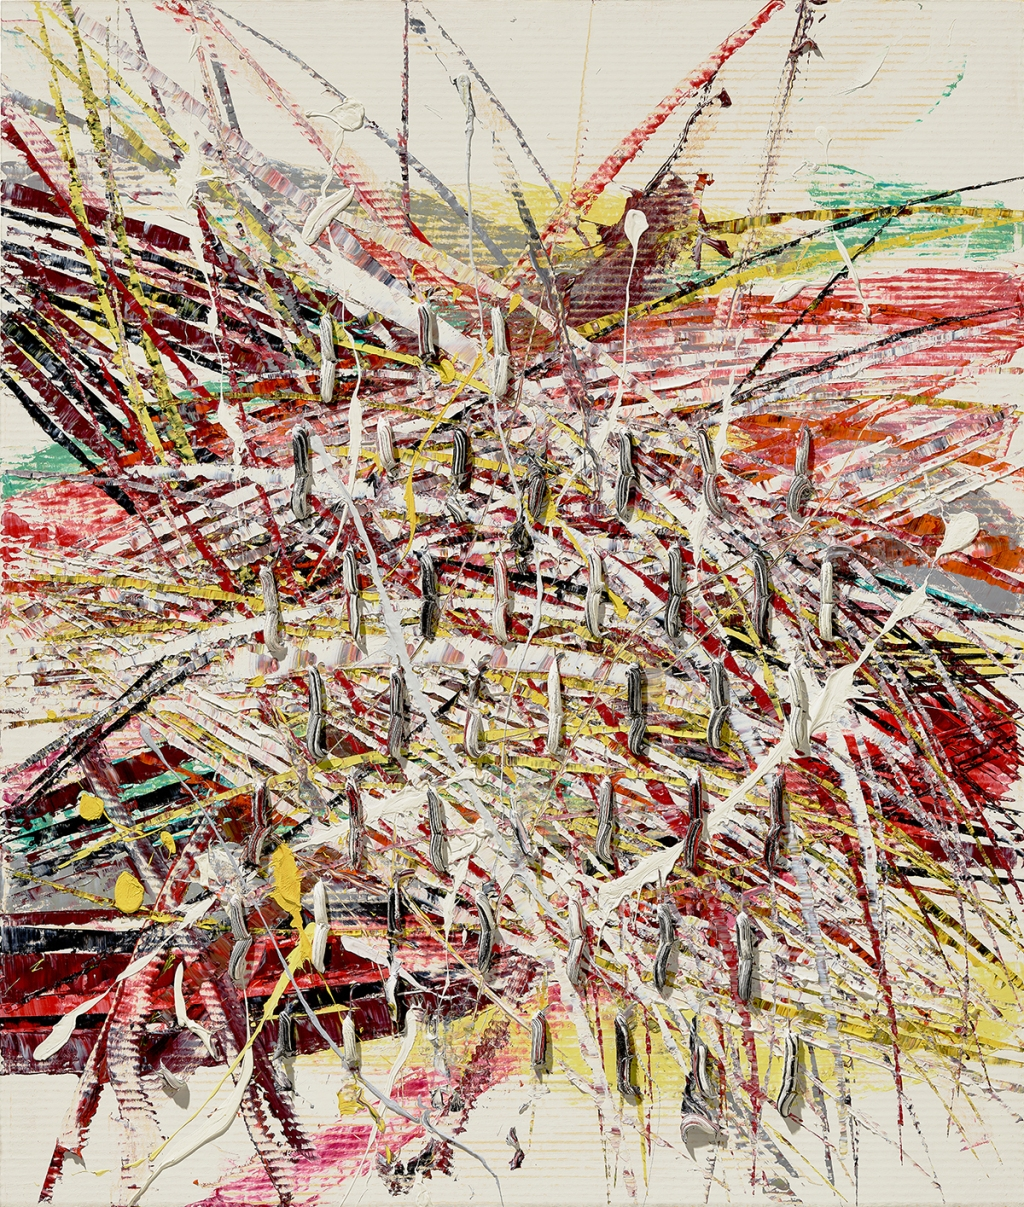 For 48 Hours Only, Gagosian Is Offering a Mark Grotjahn Painting for $800,000